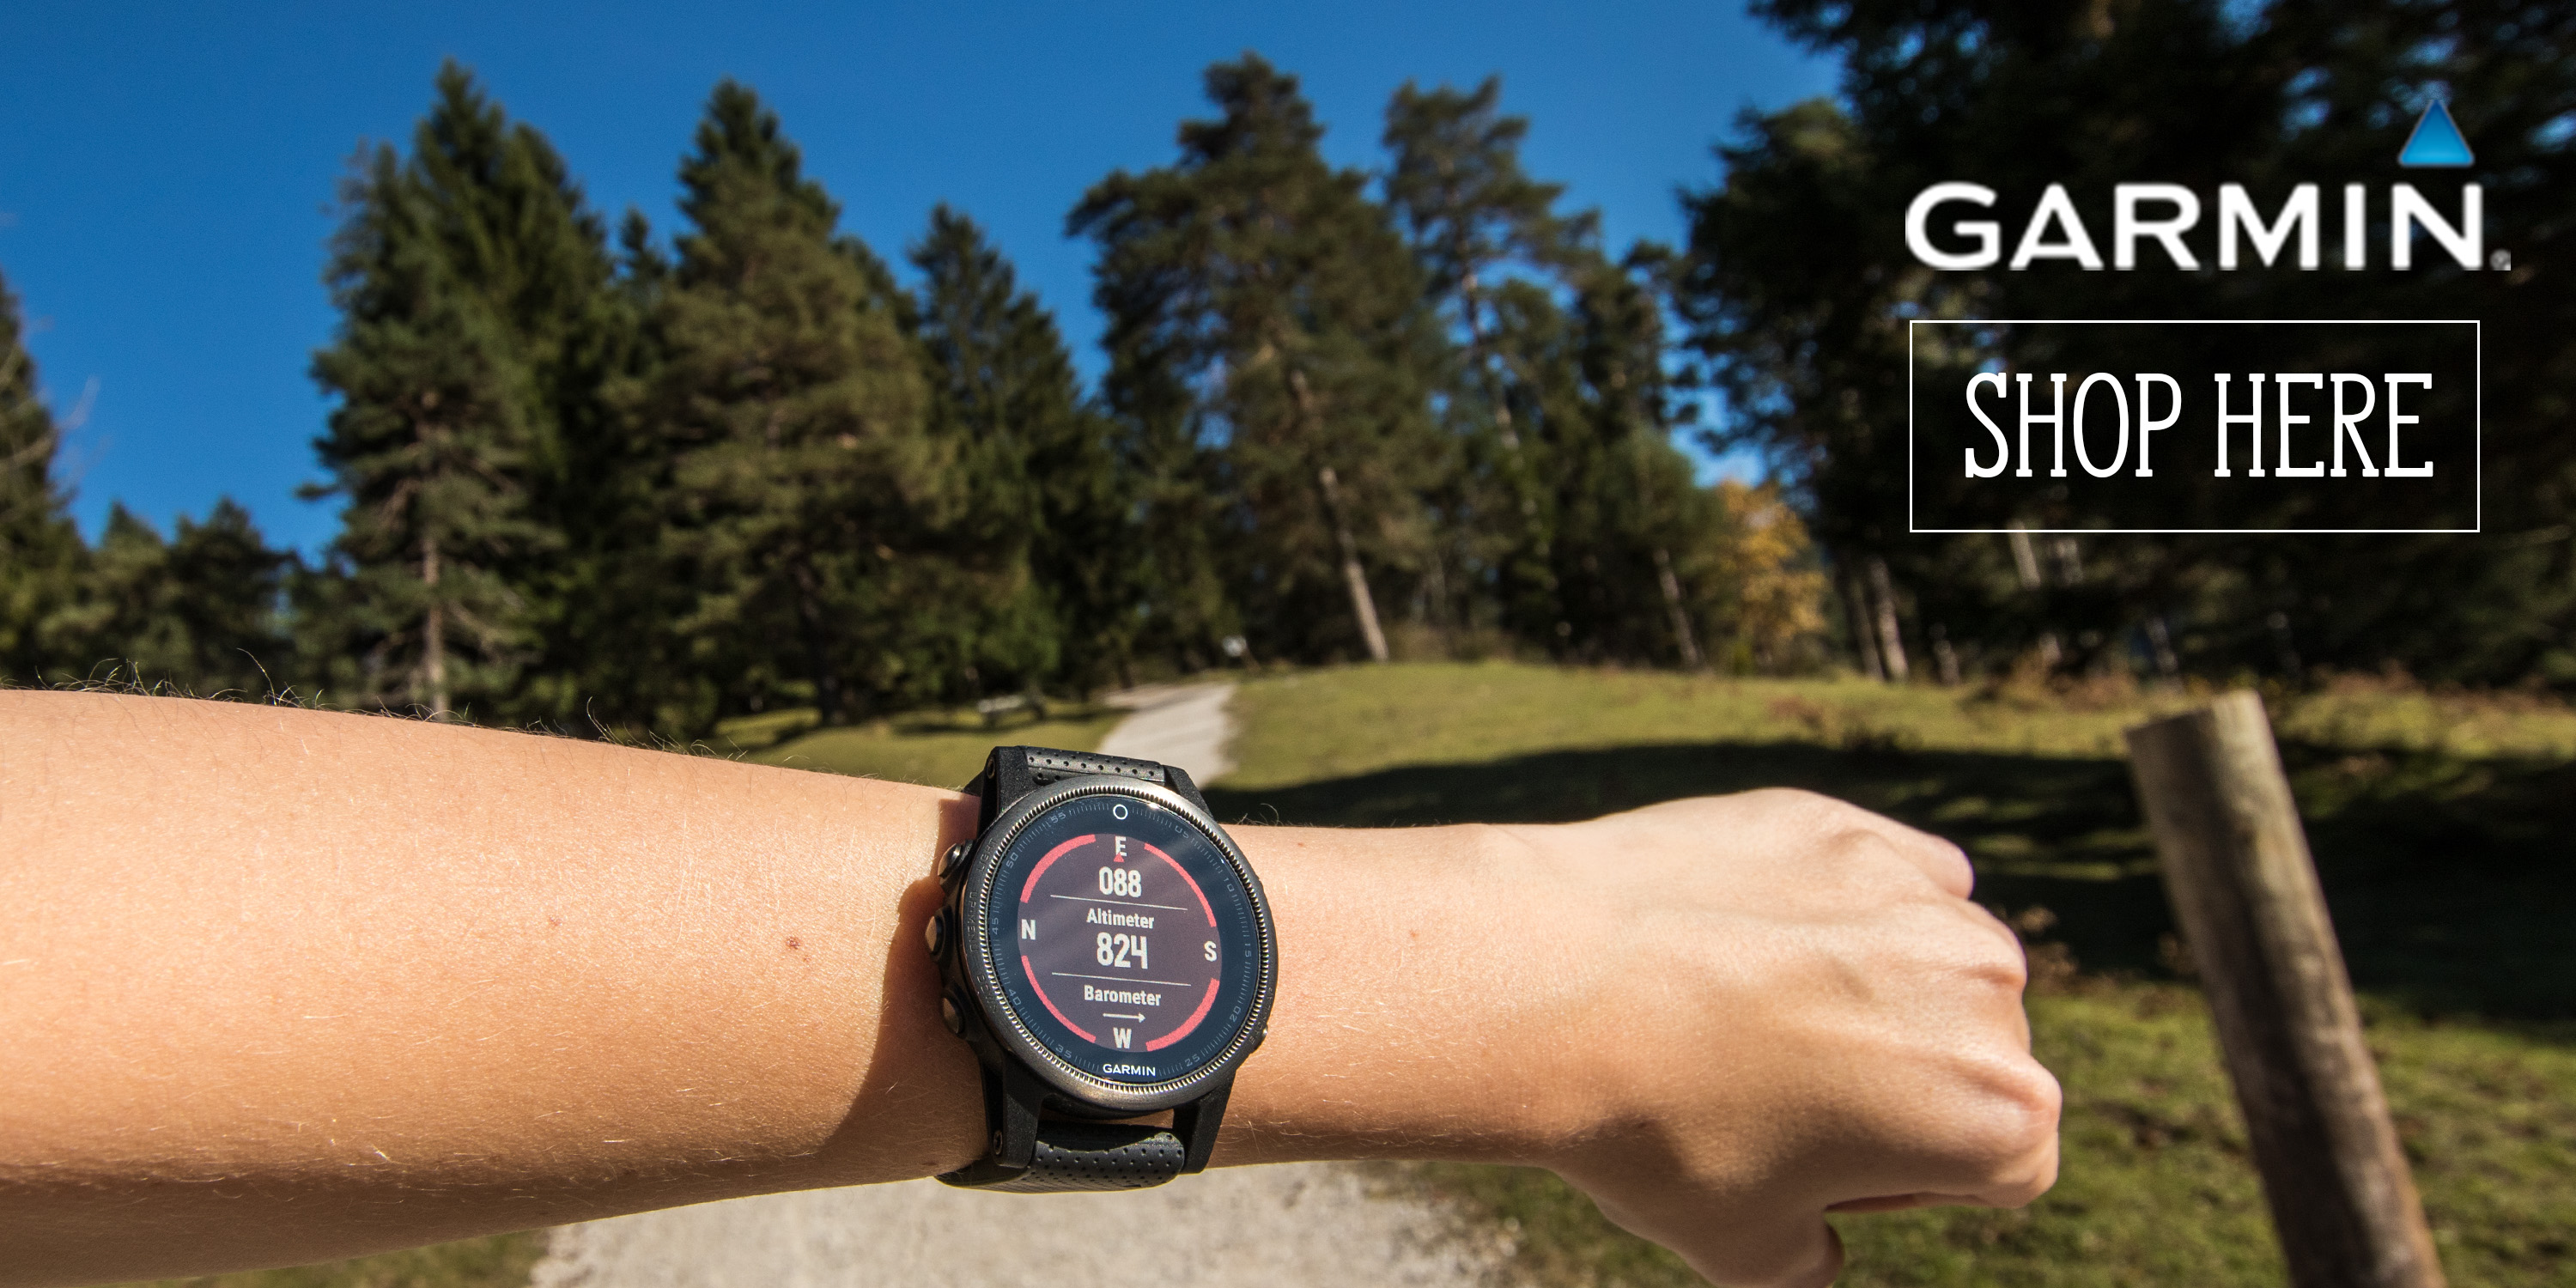 garmin-fenix-shop-here